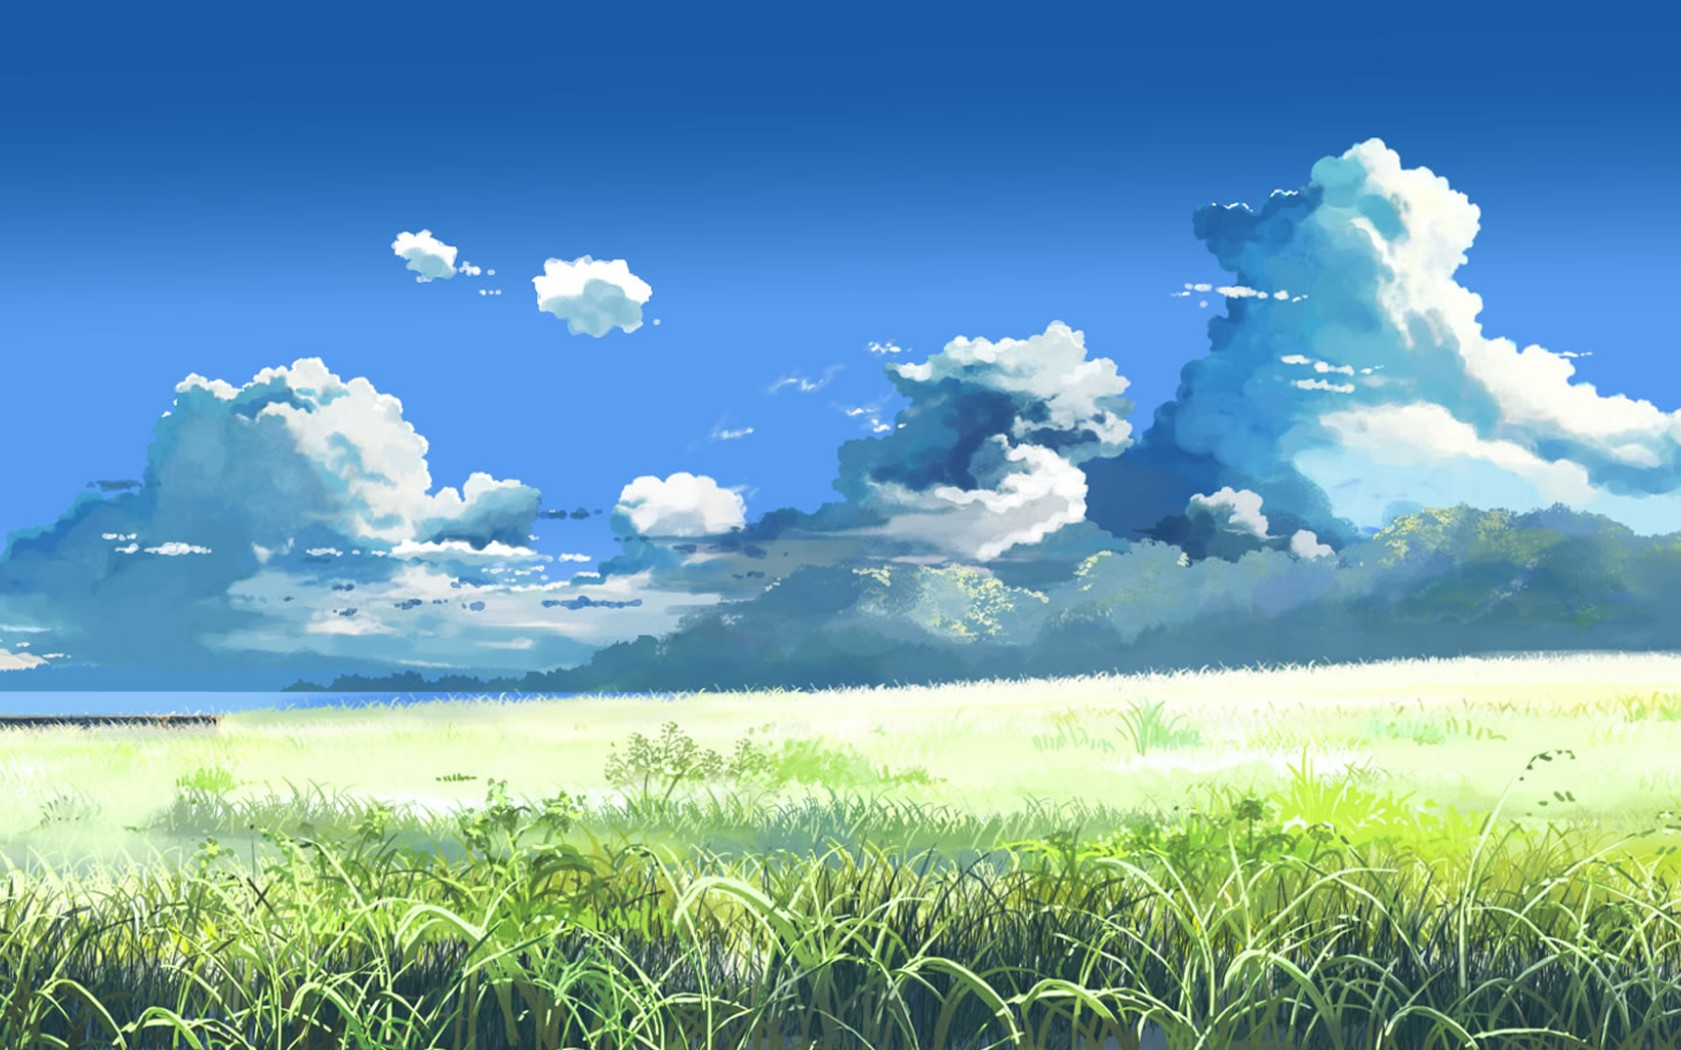 Anime Scenery Wallpaper Tumblr Widescreen 2 HD Wallpapers